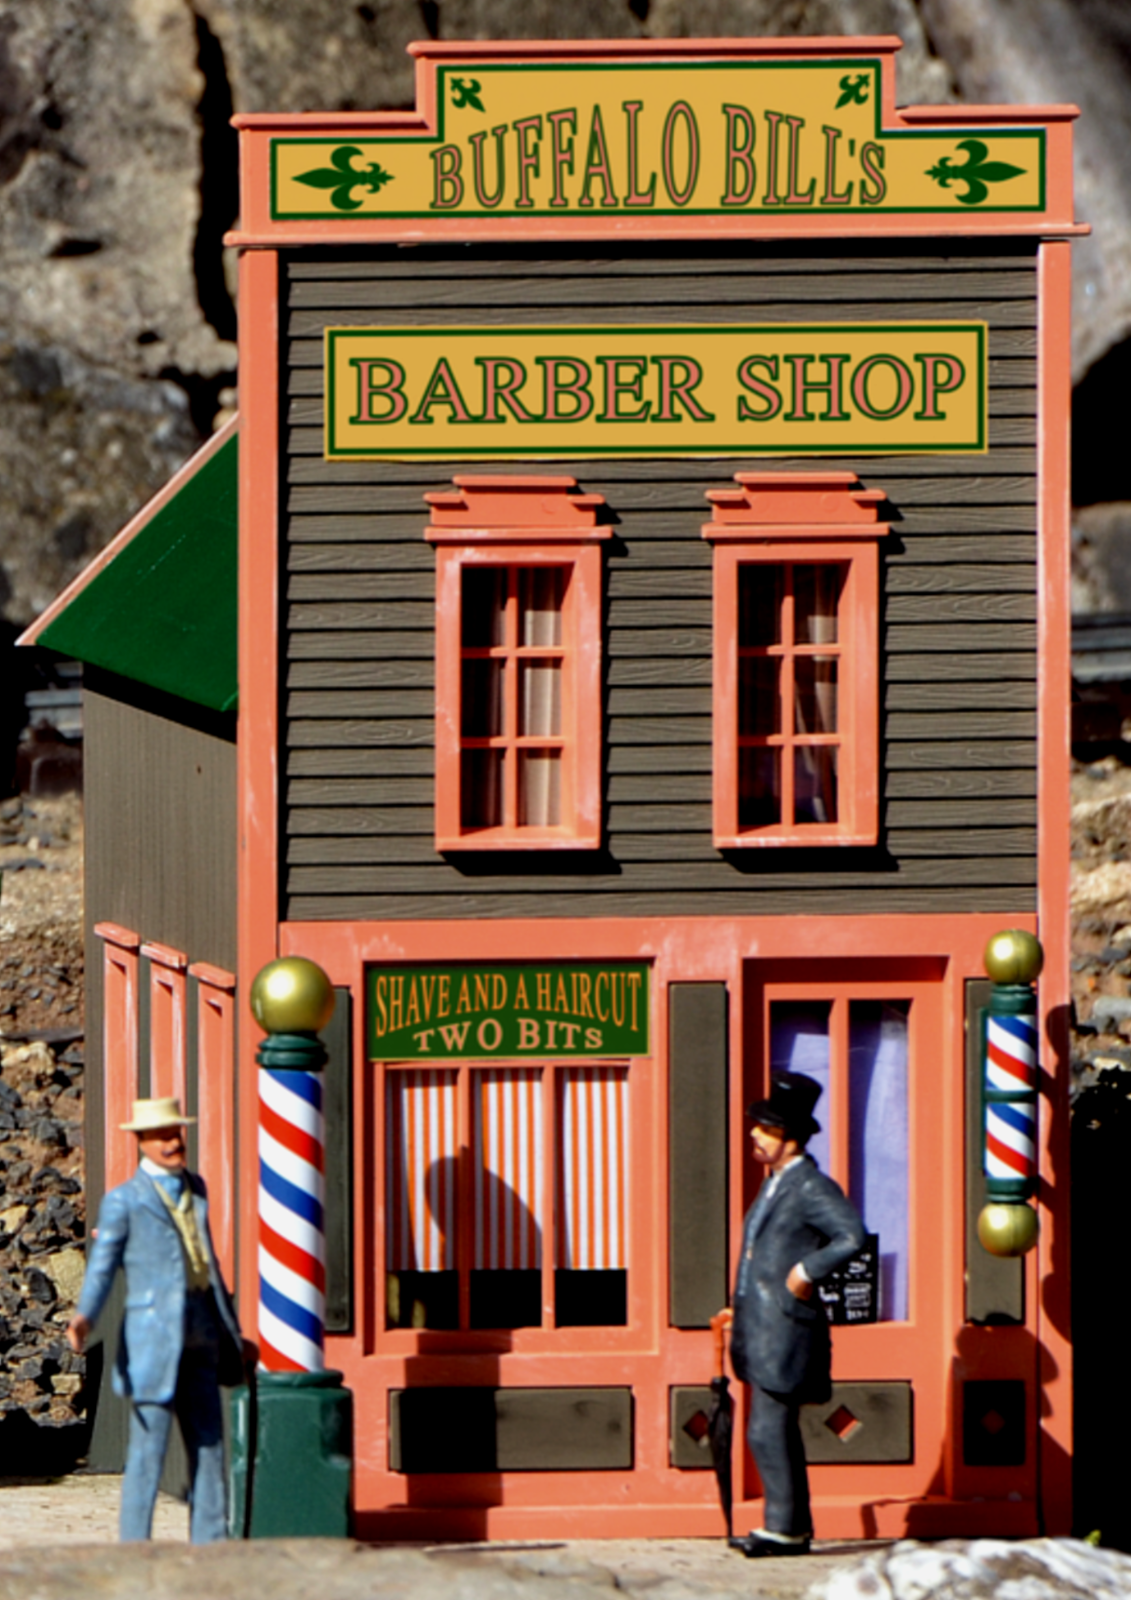 PIKO RIVER CITY BUFFALO BILL'S BARBER SHOP G  Scale Assembled Building  62726  shopping en ligne